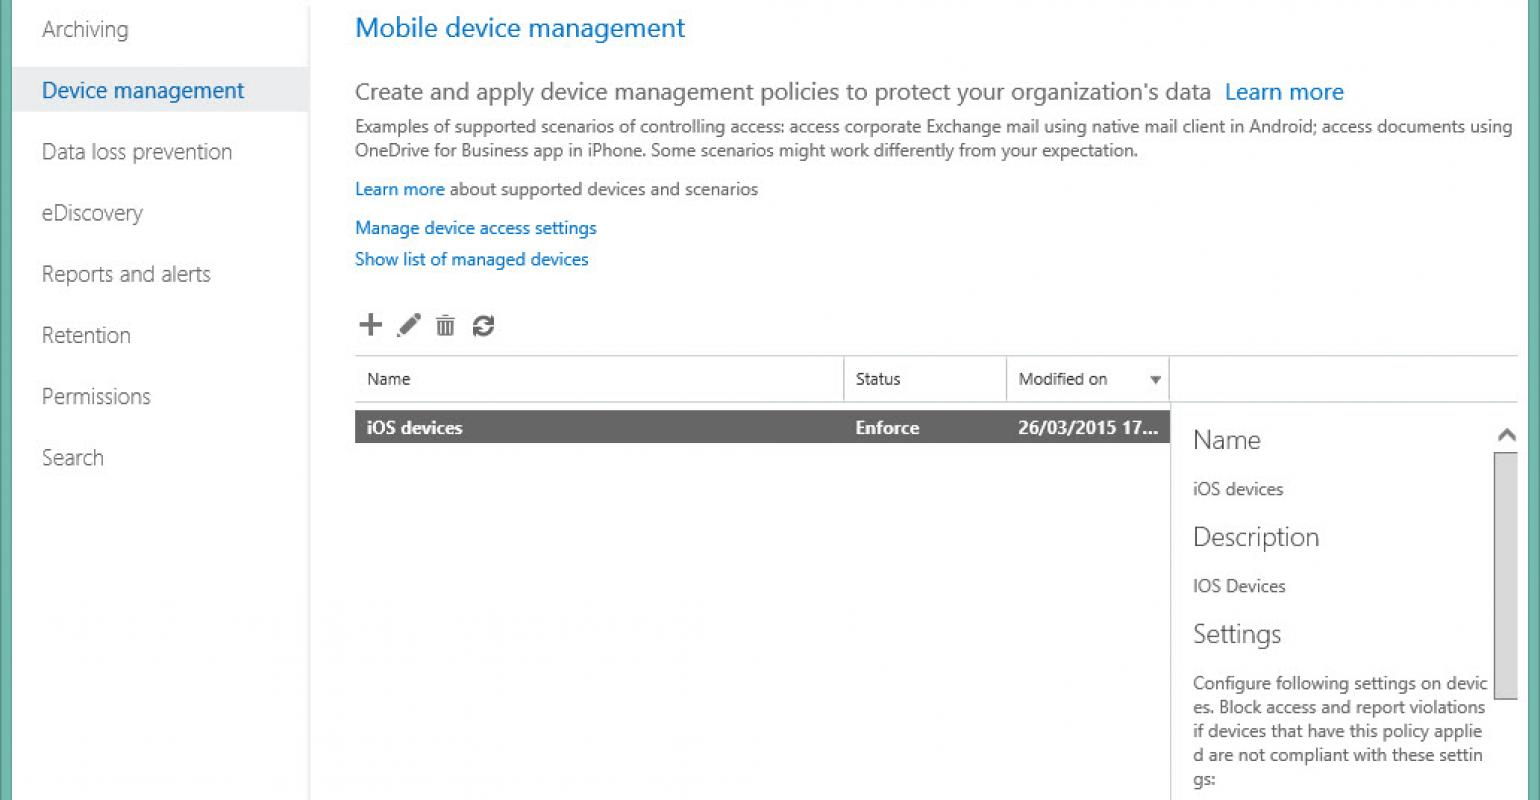 MDM for Office 365 - better than EAS policies, but not quite